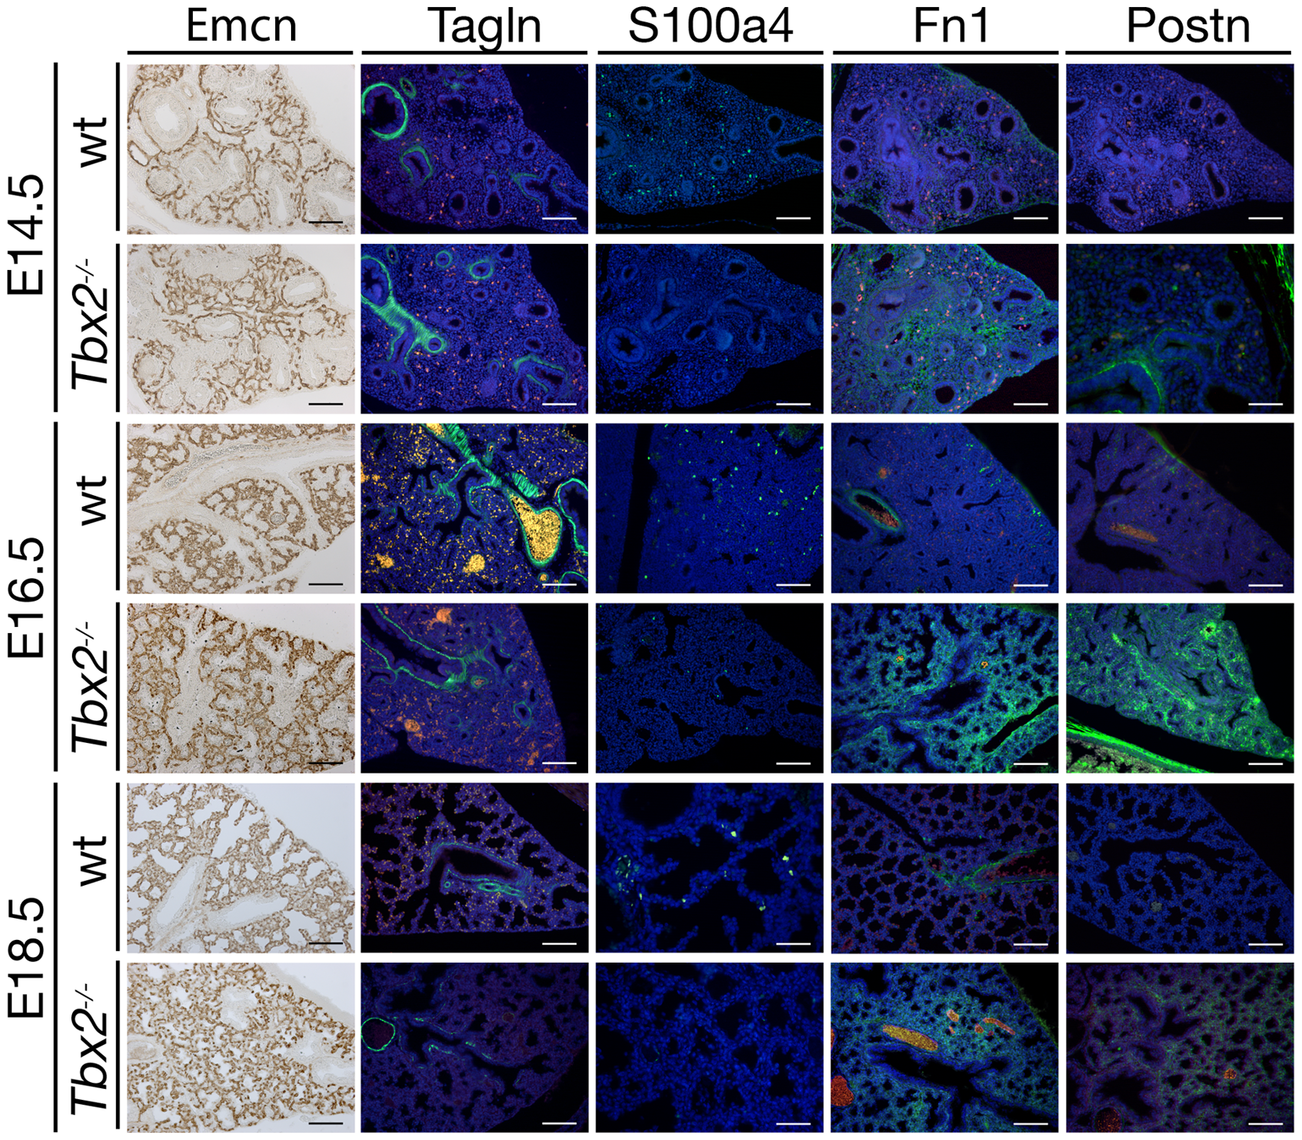 Precocious differentiation in the <i>Tbx2</i>-deficient lung mesenchyme.